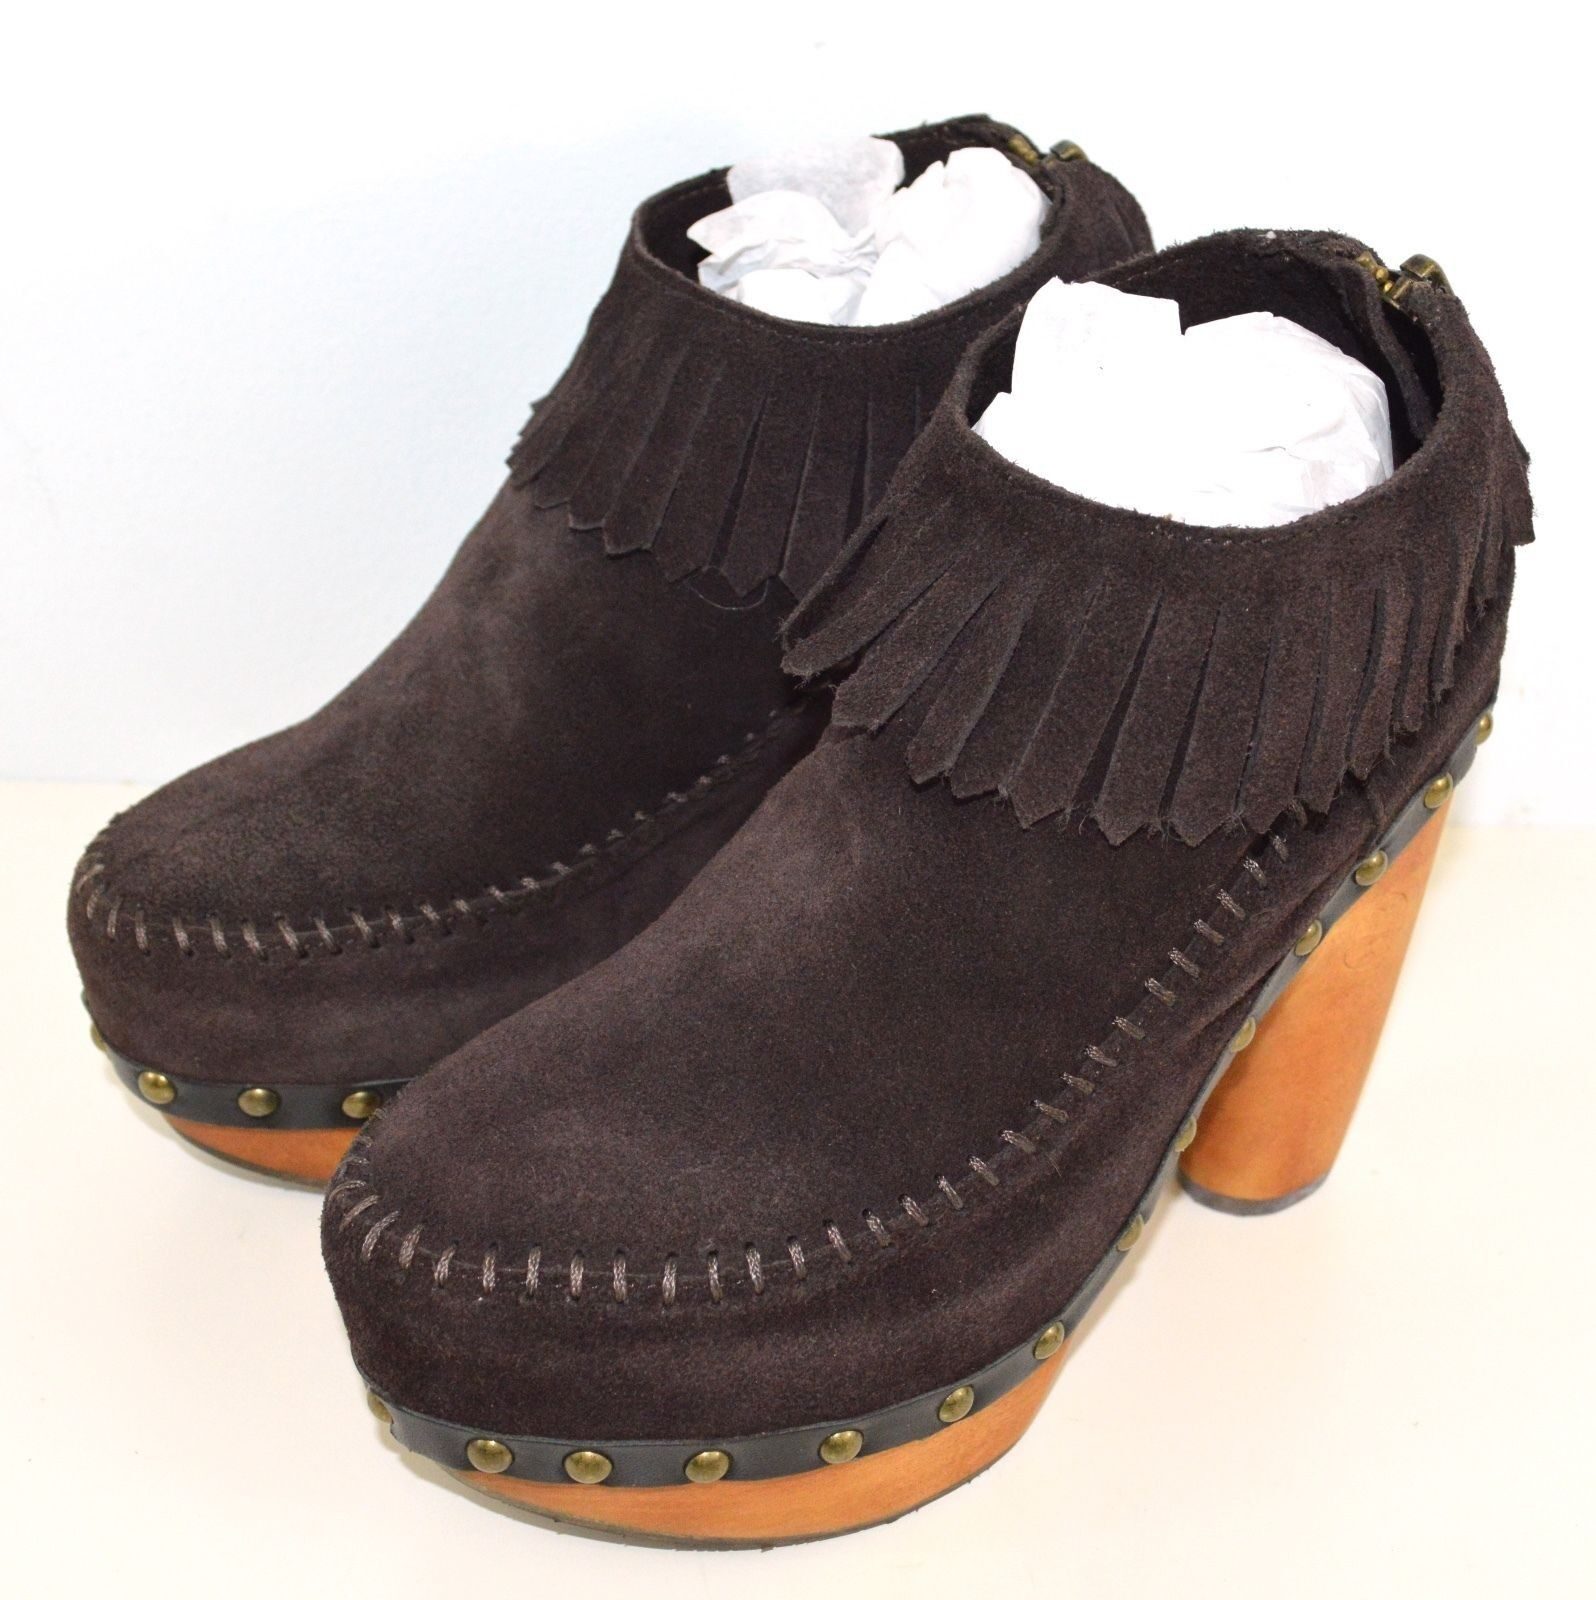 New Flogg Women Davina Suede Wood High Heel Ankle Boots Chocolate Brown X1016